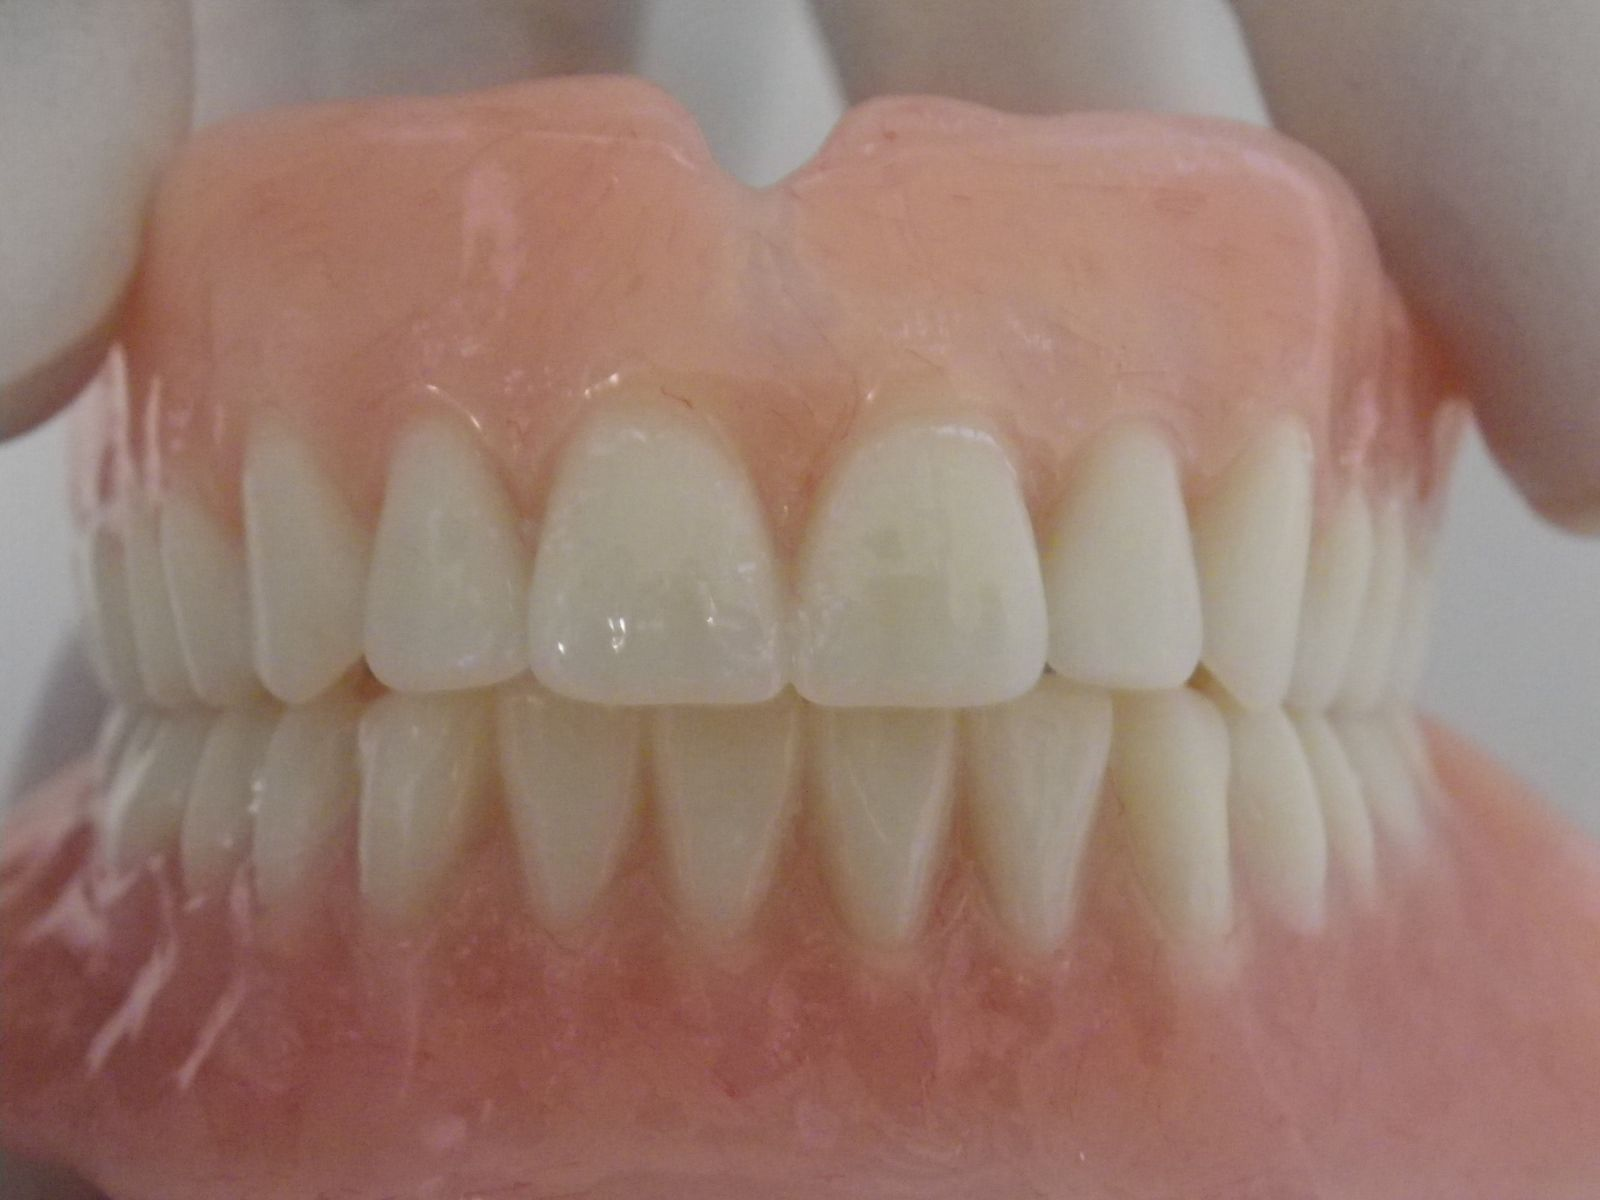 how to clean partial dentures naturally